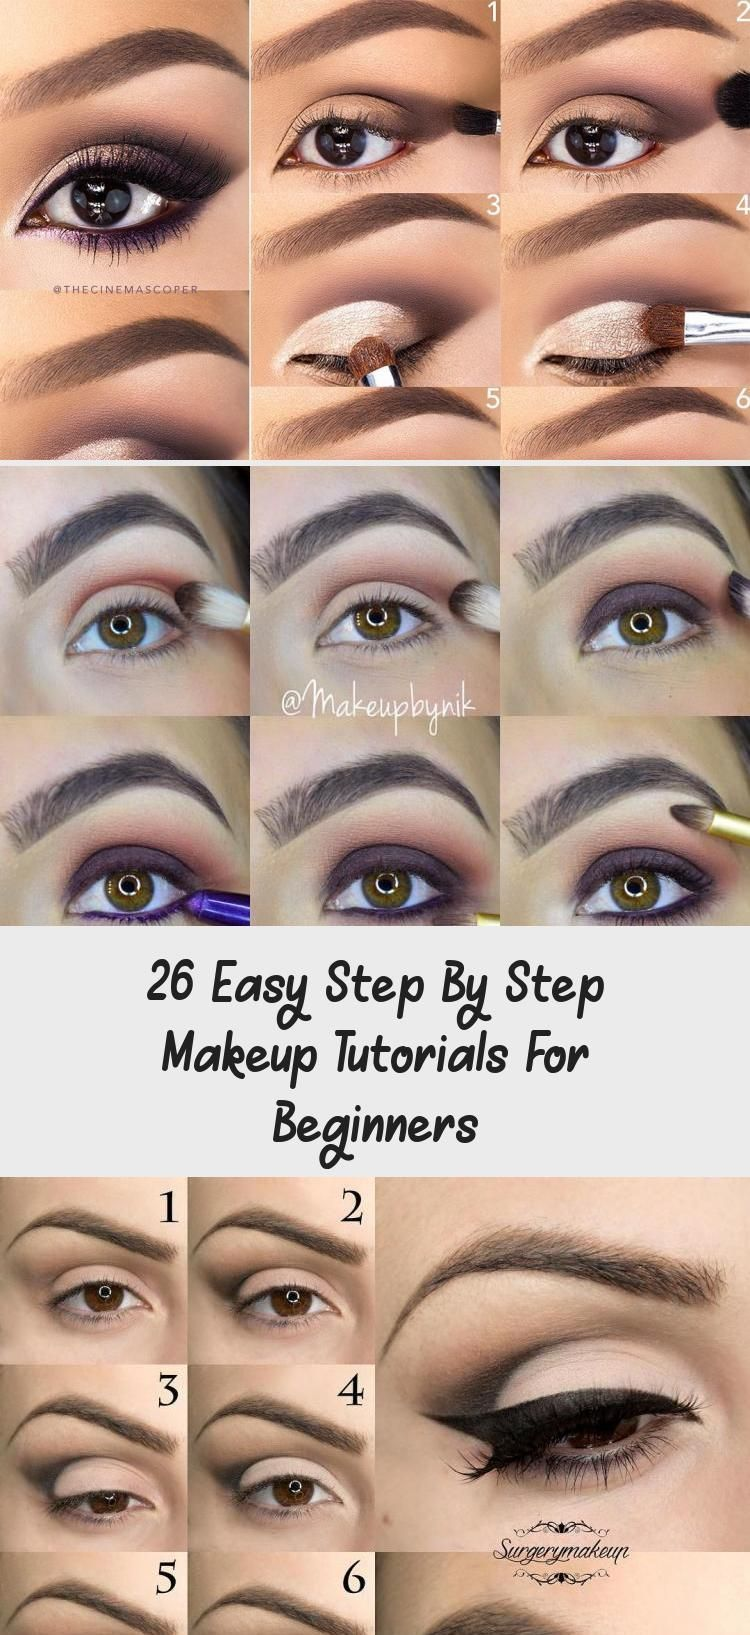 26 Easy Step By Step Makeup Tutorials For Beginners Makeup 26 Easy Step By Step In 2020 Makeup For Beginners Makeup Tutorial For Beginners Makeup Tutorial Video